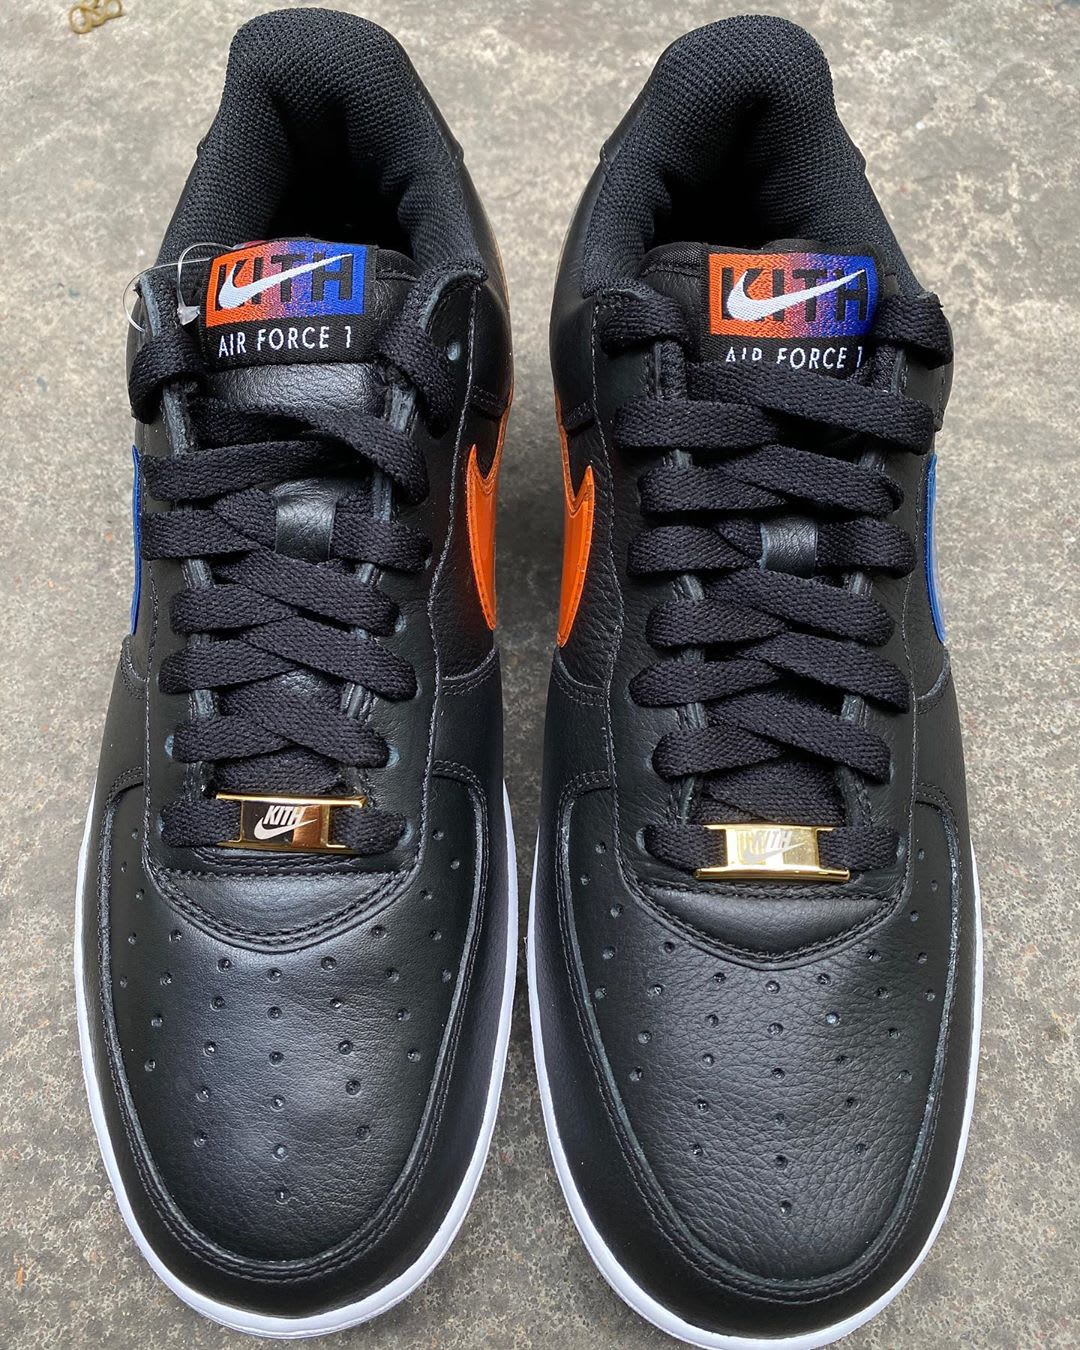 Kith x Nike Air Force 1 Low 'NYC' CZ7928-001 Front